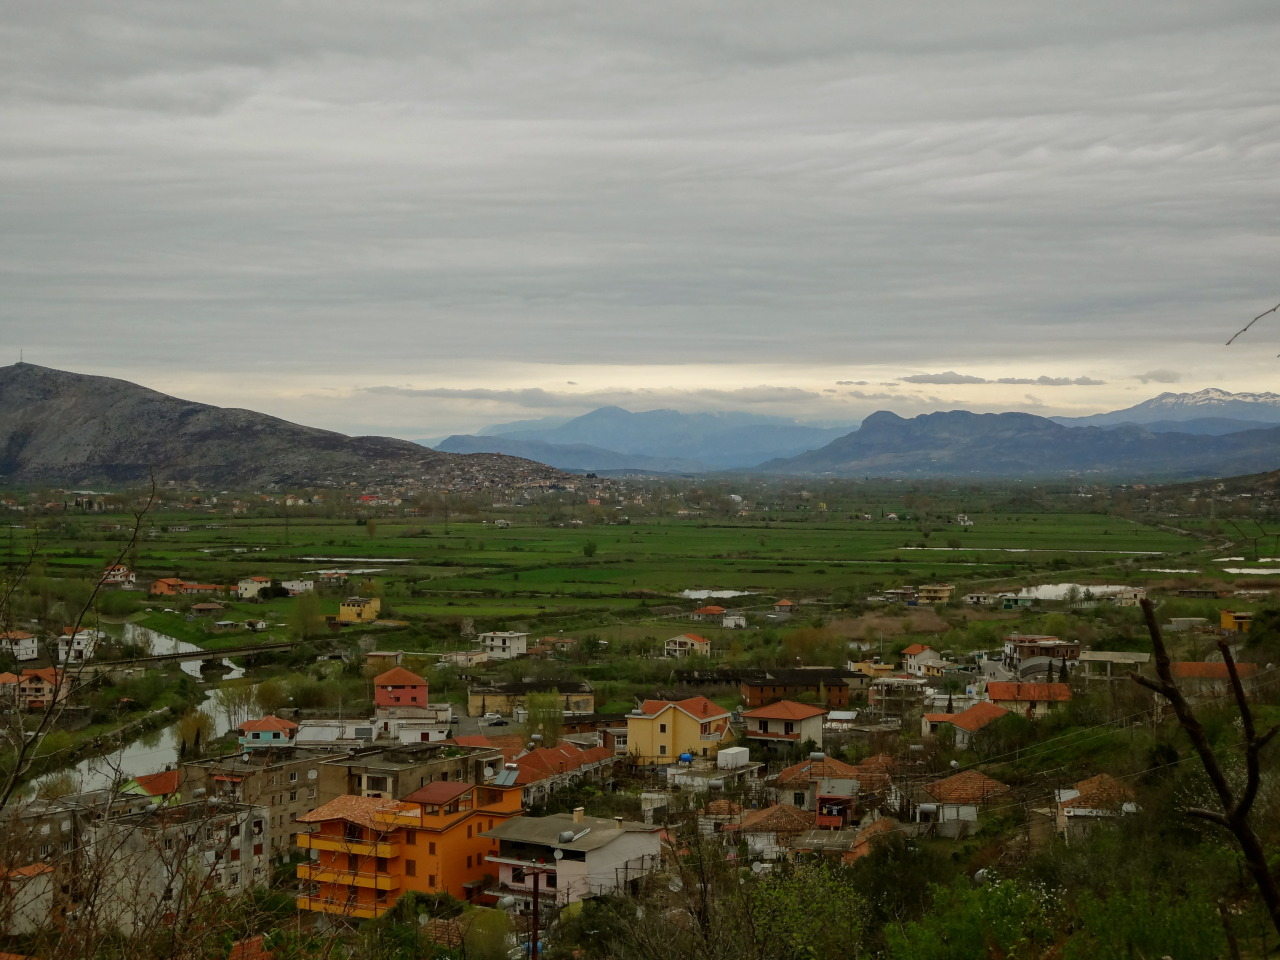 Lezha. April, 2013.